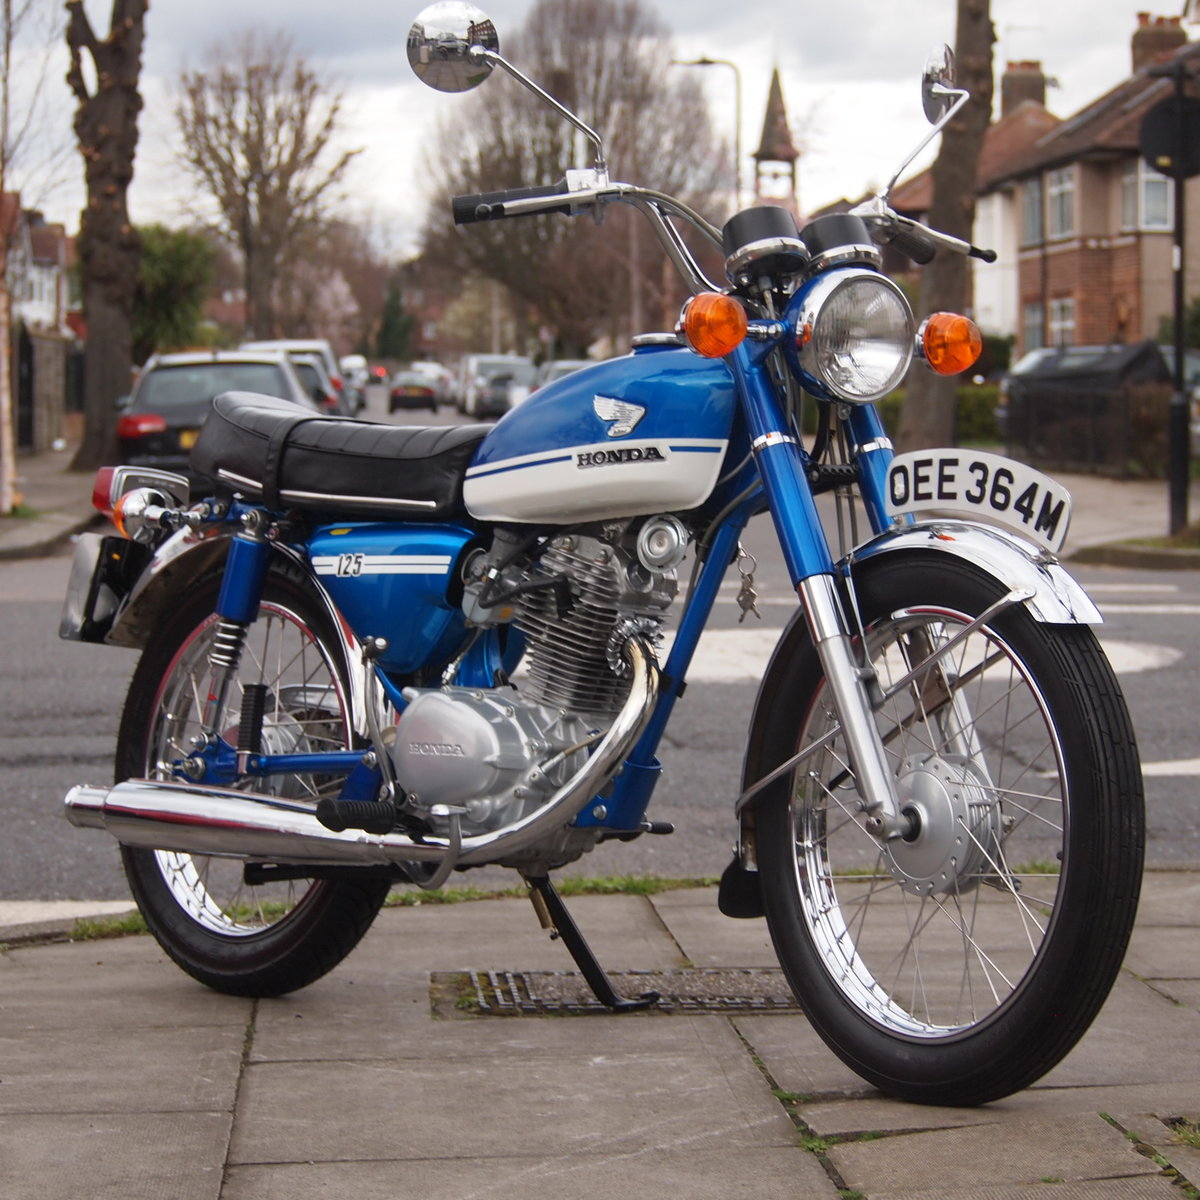 1973 Honda CB125 S UK Bike, RESERVED FOR JOE. SOLD (picture 1 of 6)